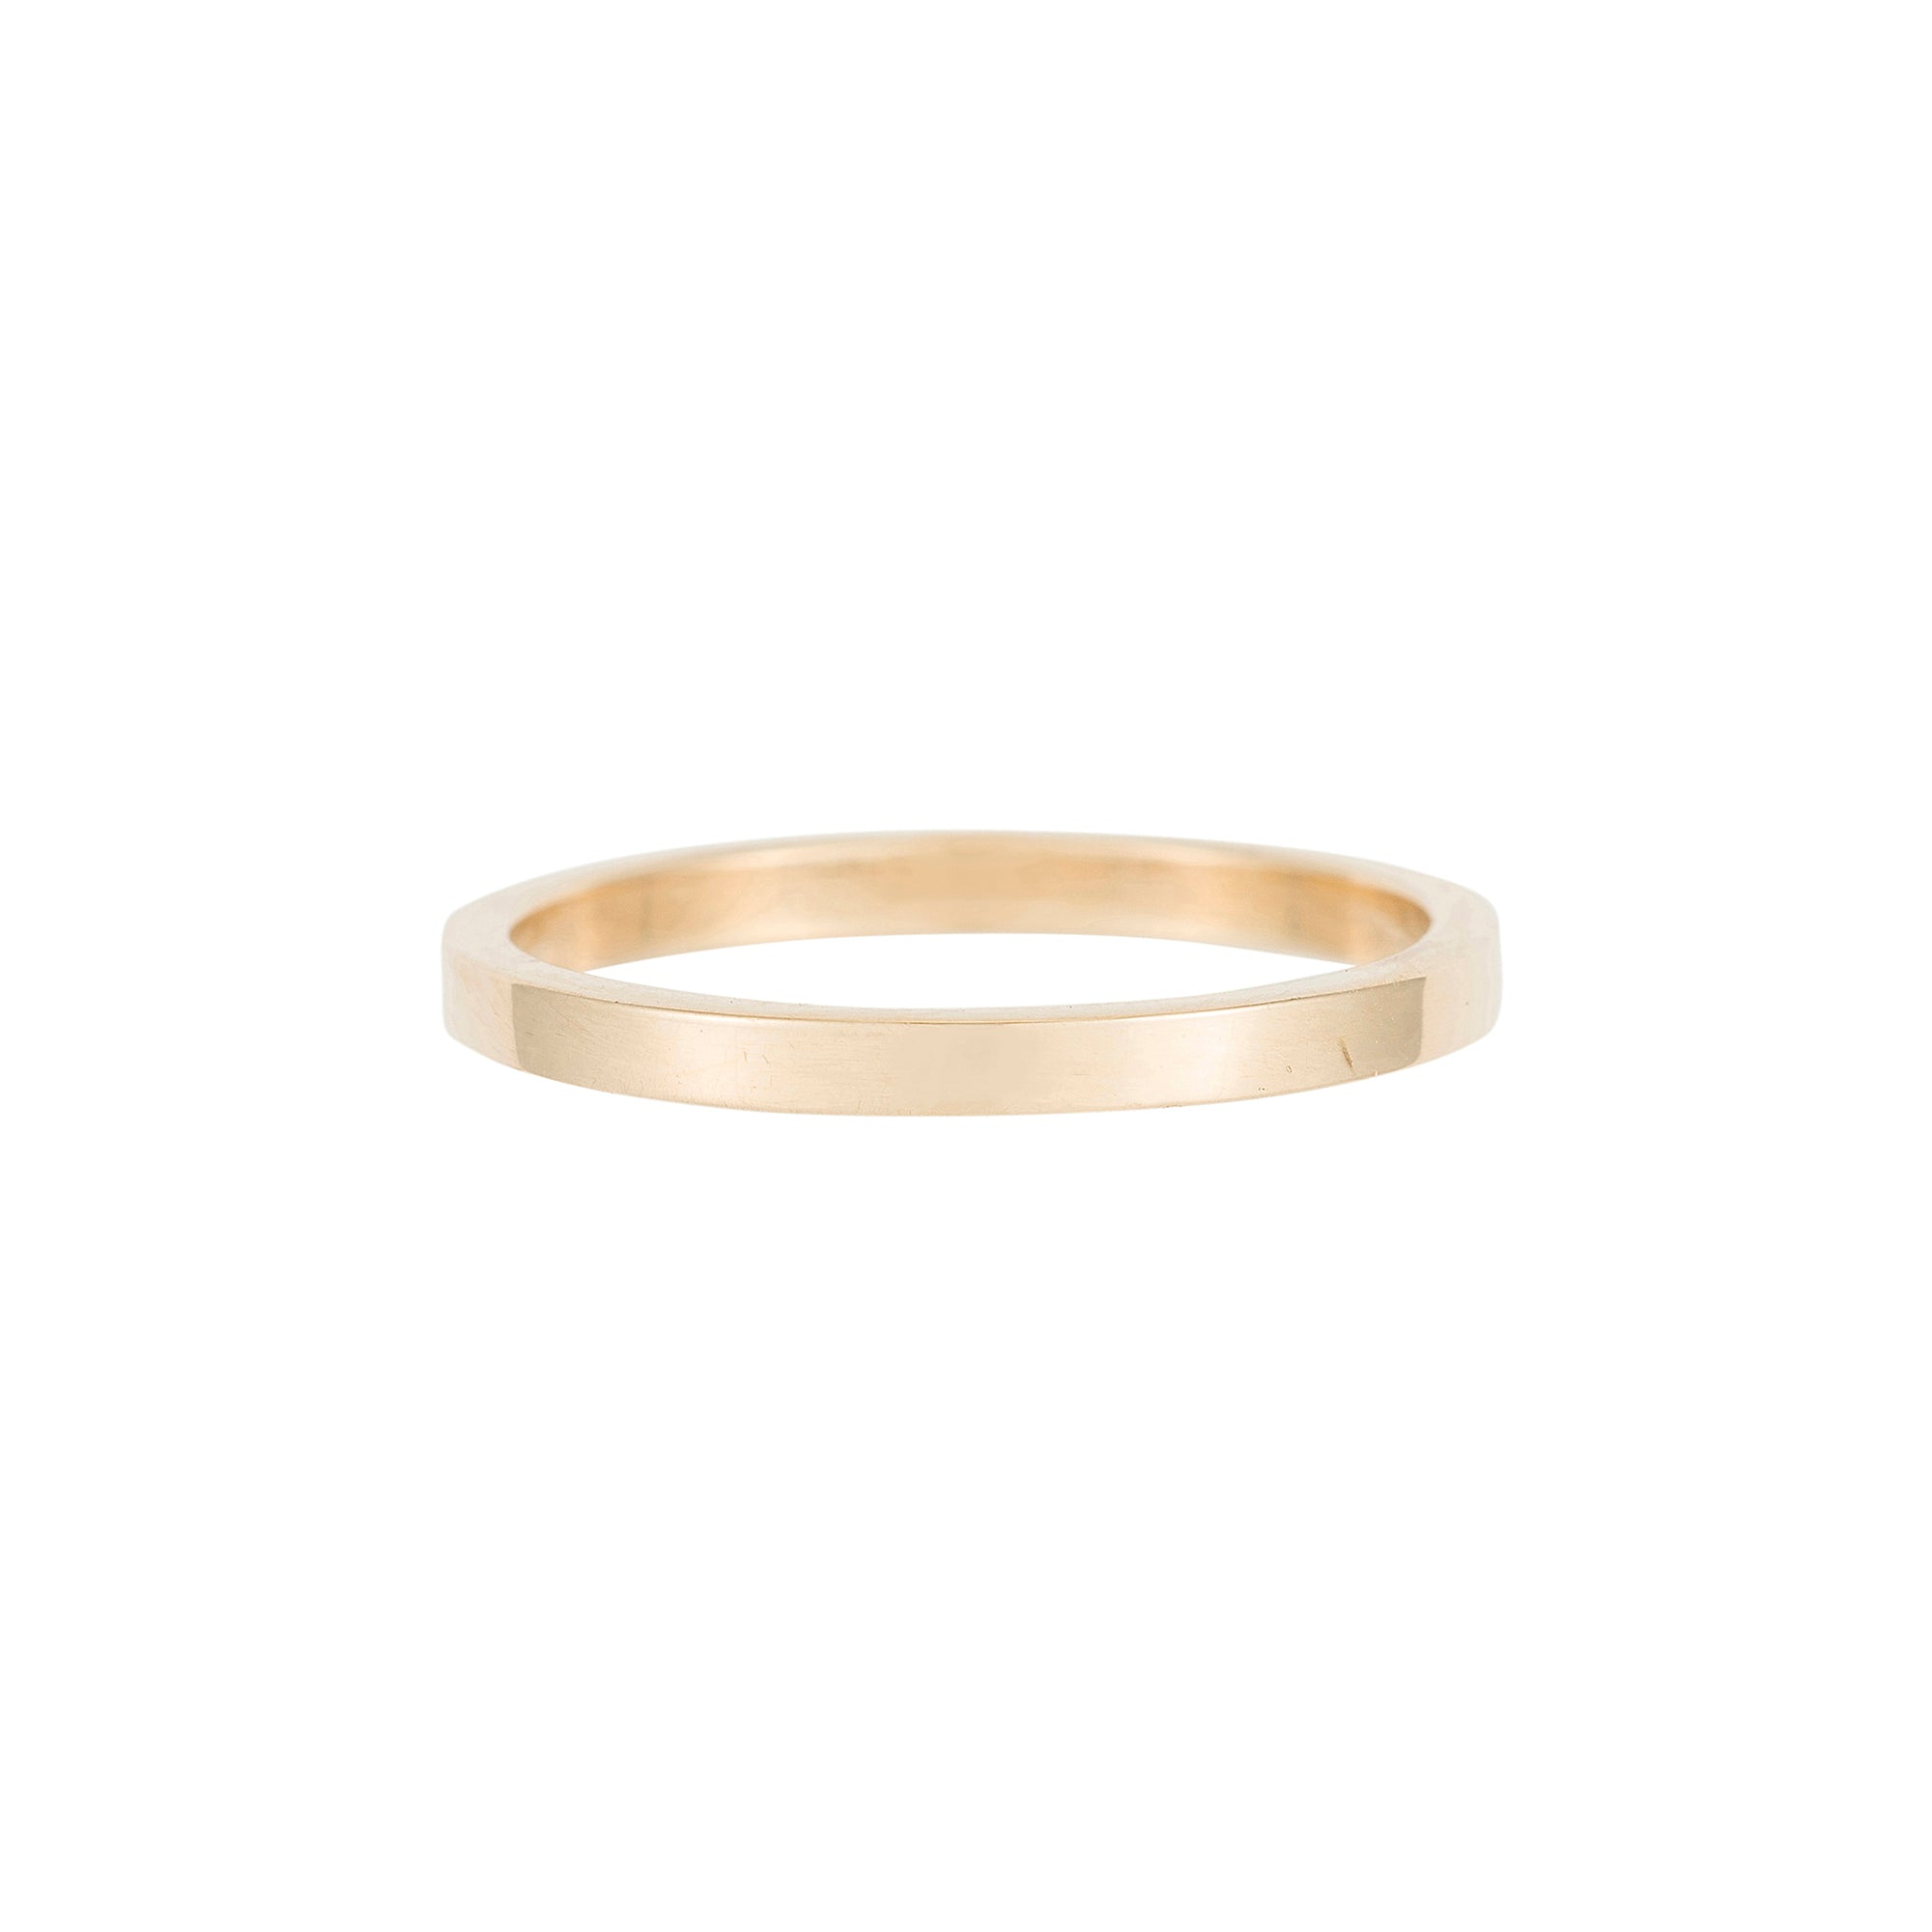 2mm Basic Band by Jennie Kwon for Broken English Jewelry